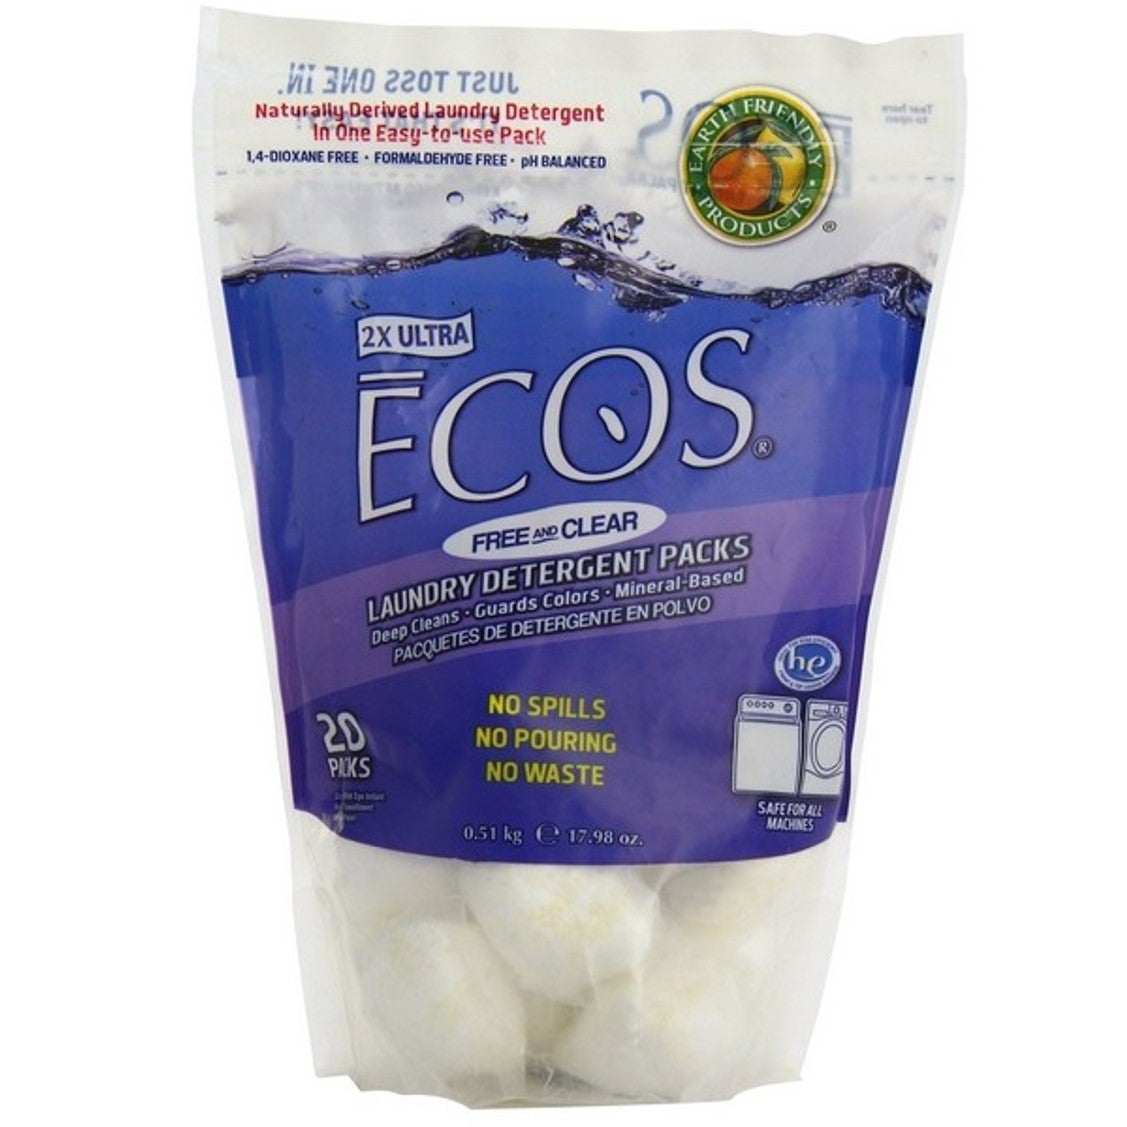 Earth Friendly ECOS Laundry Detergent Packs - Free & Clear, 510 g.-NaturesWisdom